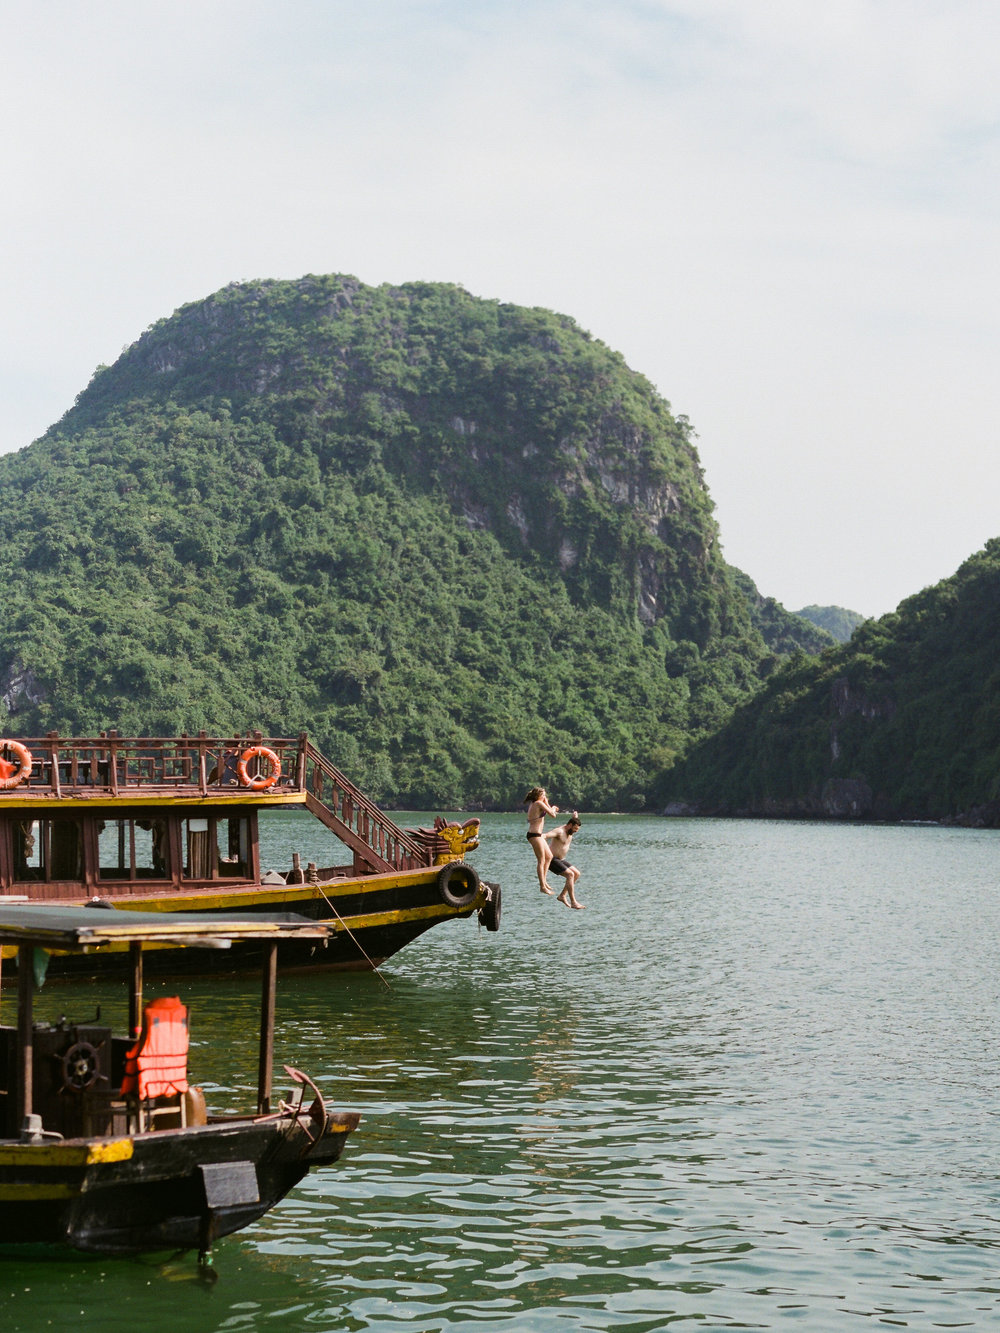 US IN HA LONG BAY, VIETNAM (IMAGE BY TULLE & GRACE)